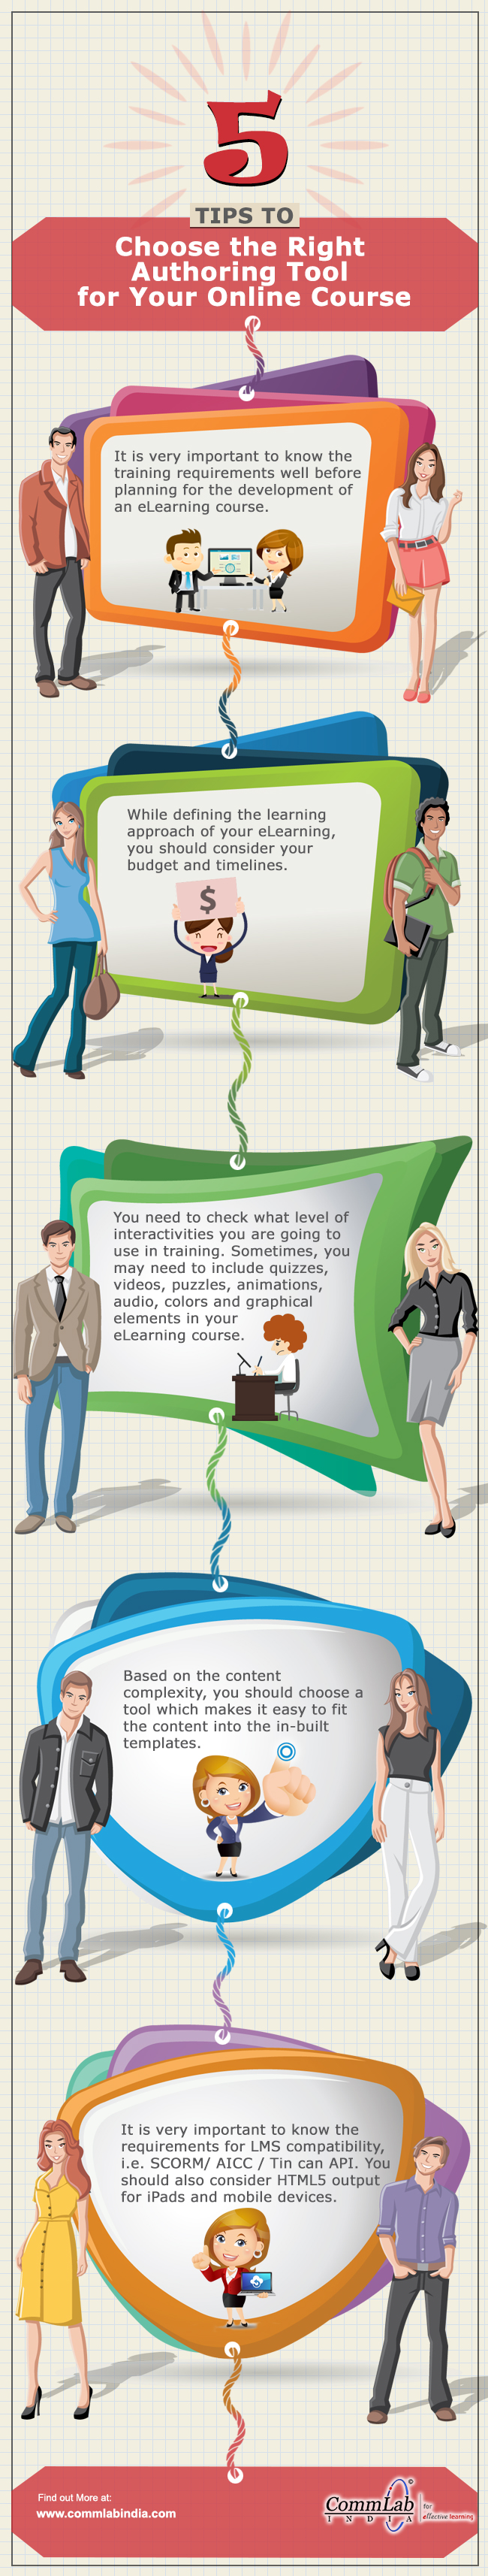 E-learning Development - Choosing the Right Authoring Tool [Infographic]